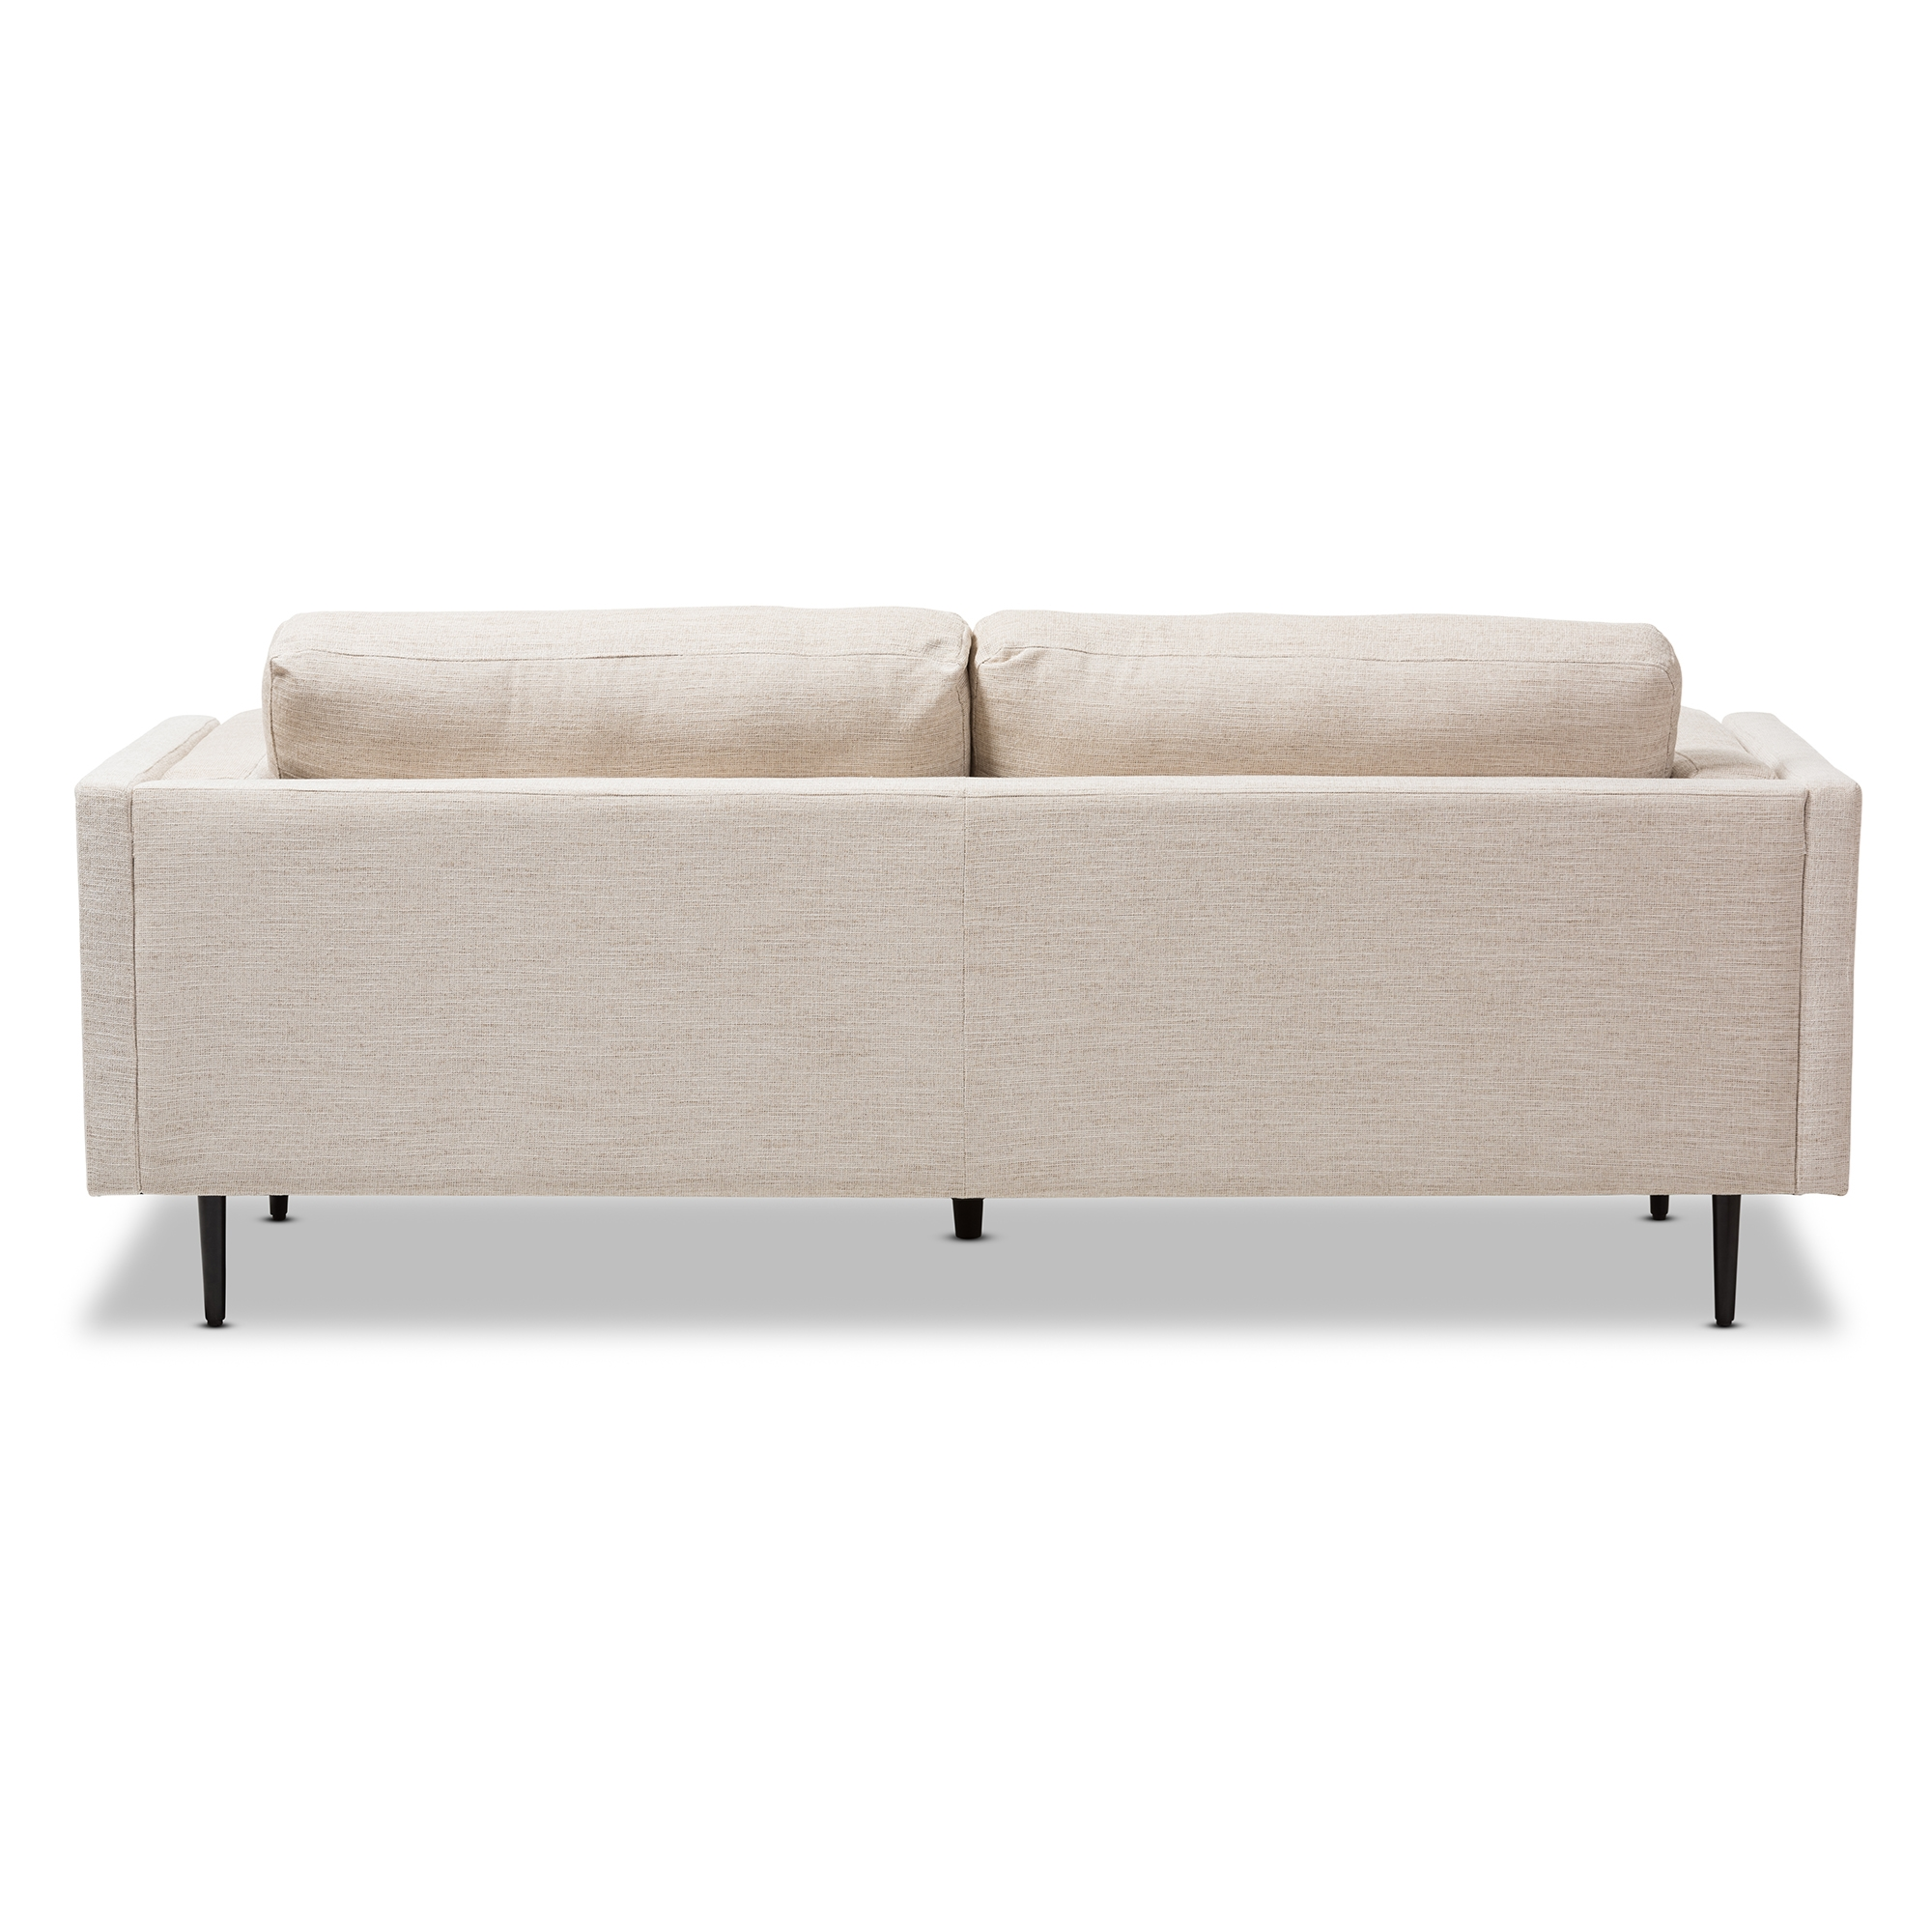 Retro Sofa Wood Baxton Studio Brittany Retro Mid Century Modern Light Beige Fabric Upholstered 3 Seater Sofa